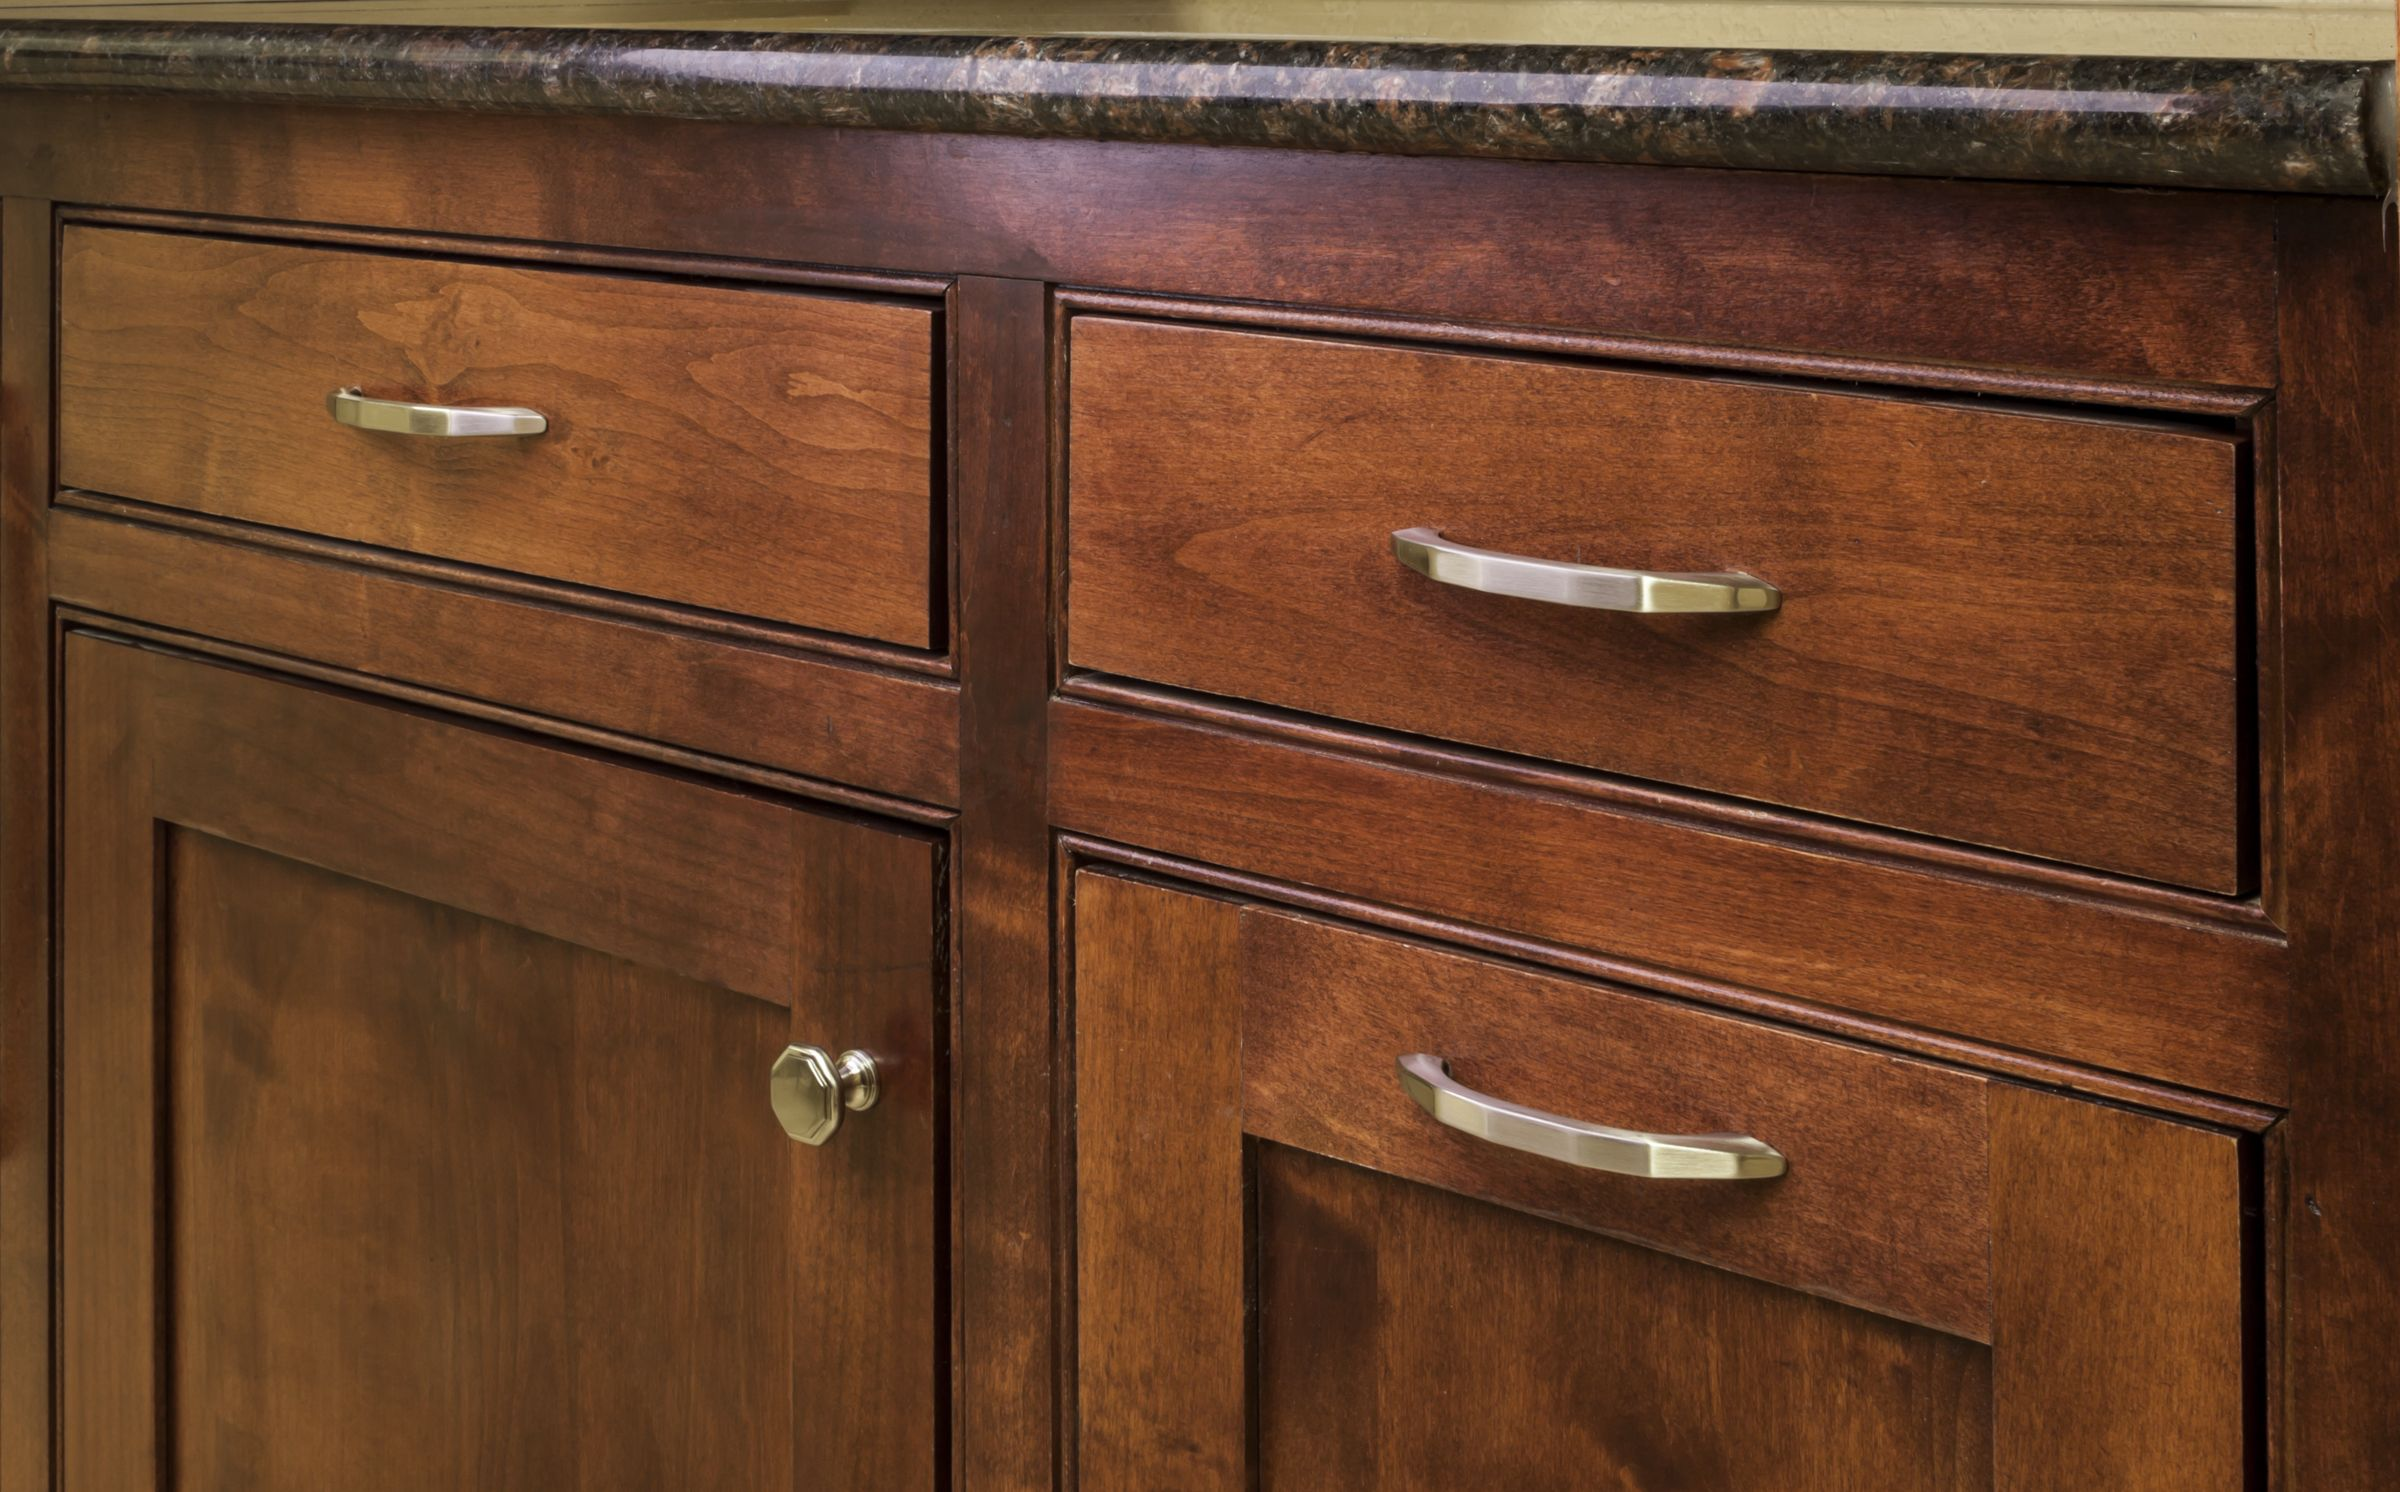 Drake knob and pulls from Elements by Hardware Resources. (424SN ...